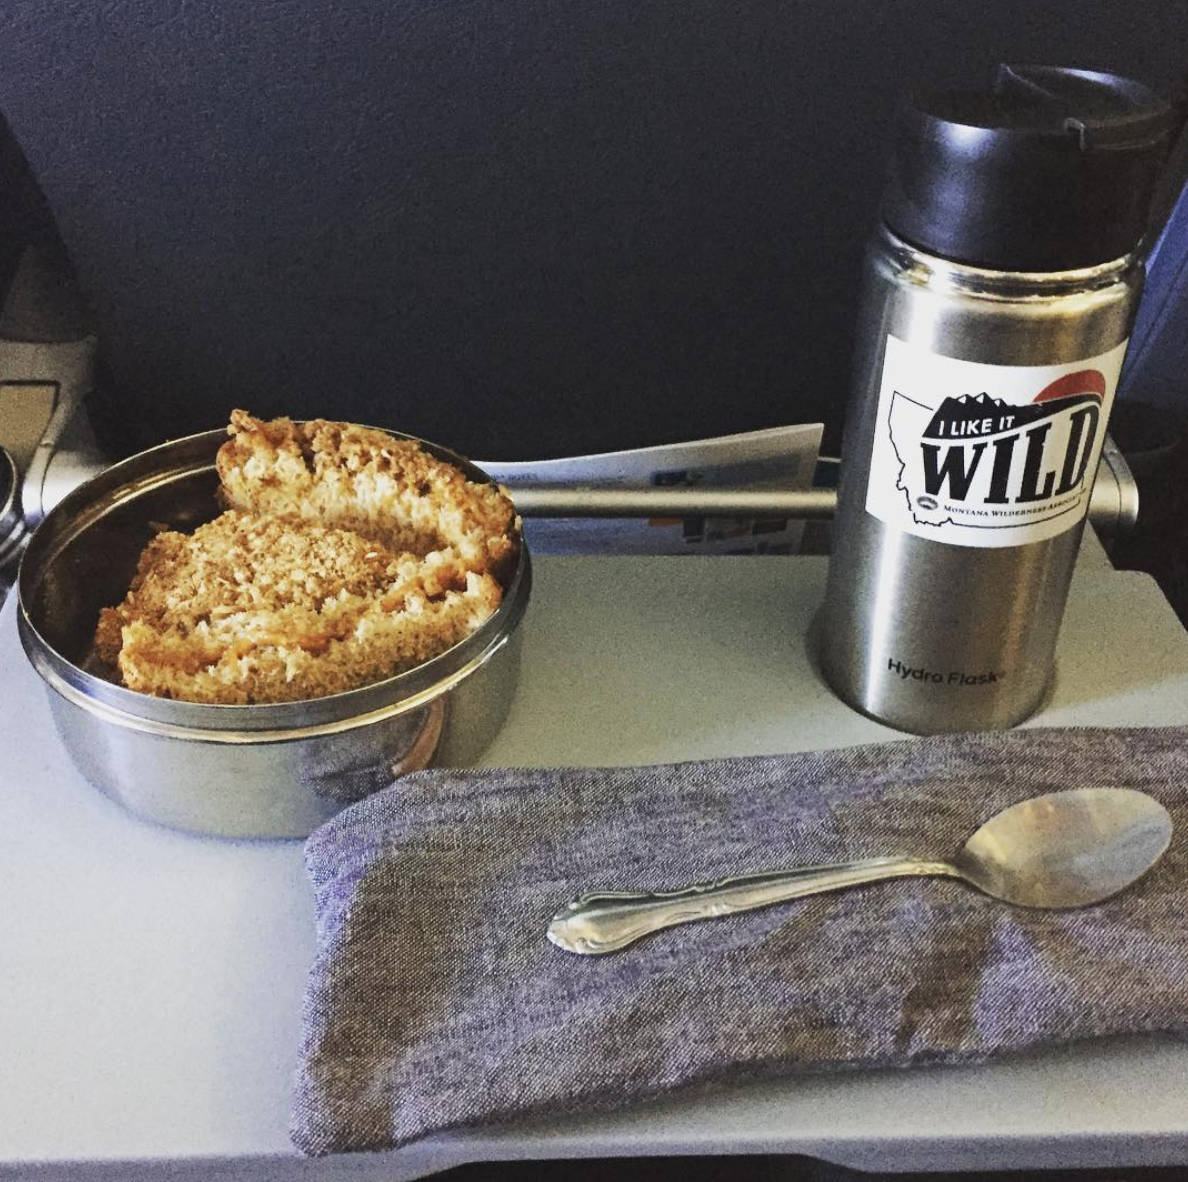 On a flight, Kara gets coffee in her reusable mug and brings her own snacks, utensils, and napkin.